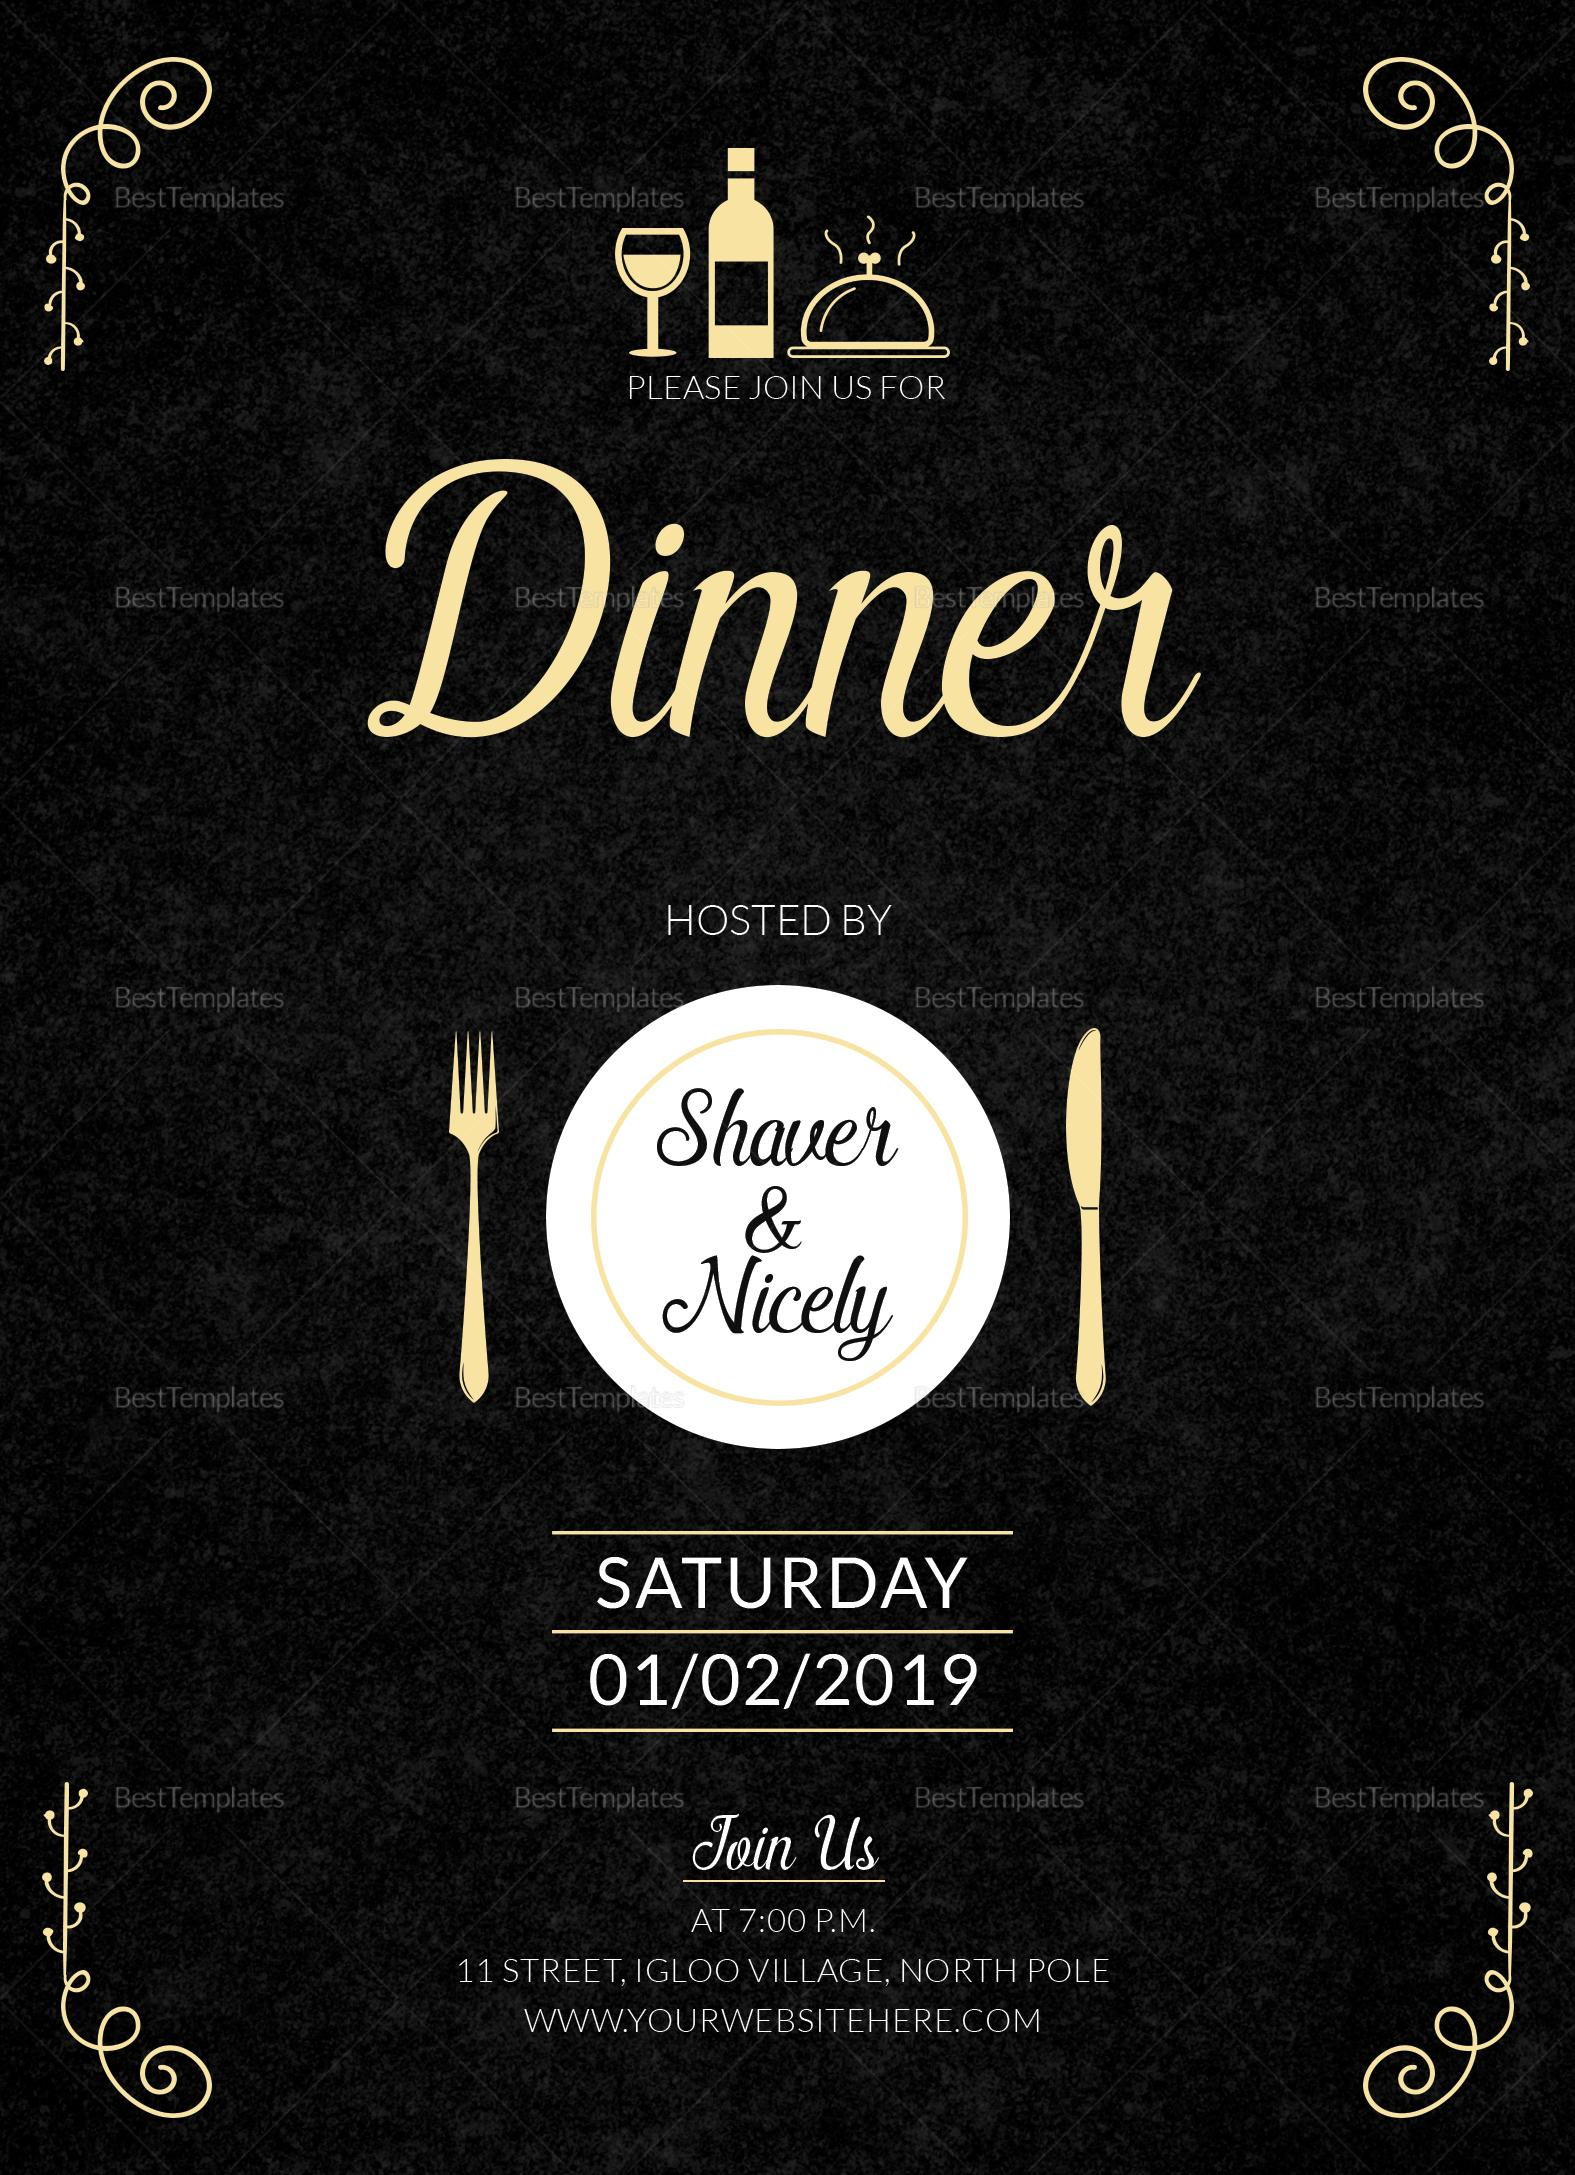 Dinner Invitation Template Publisher